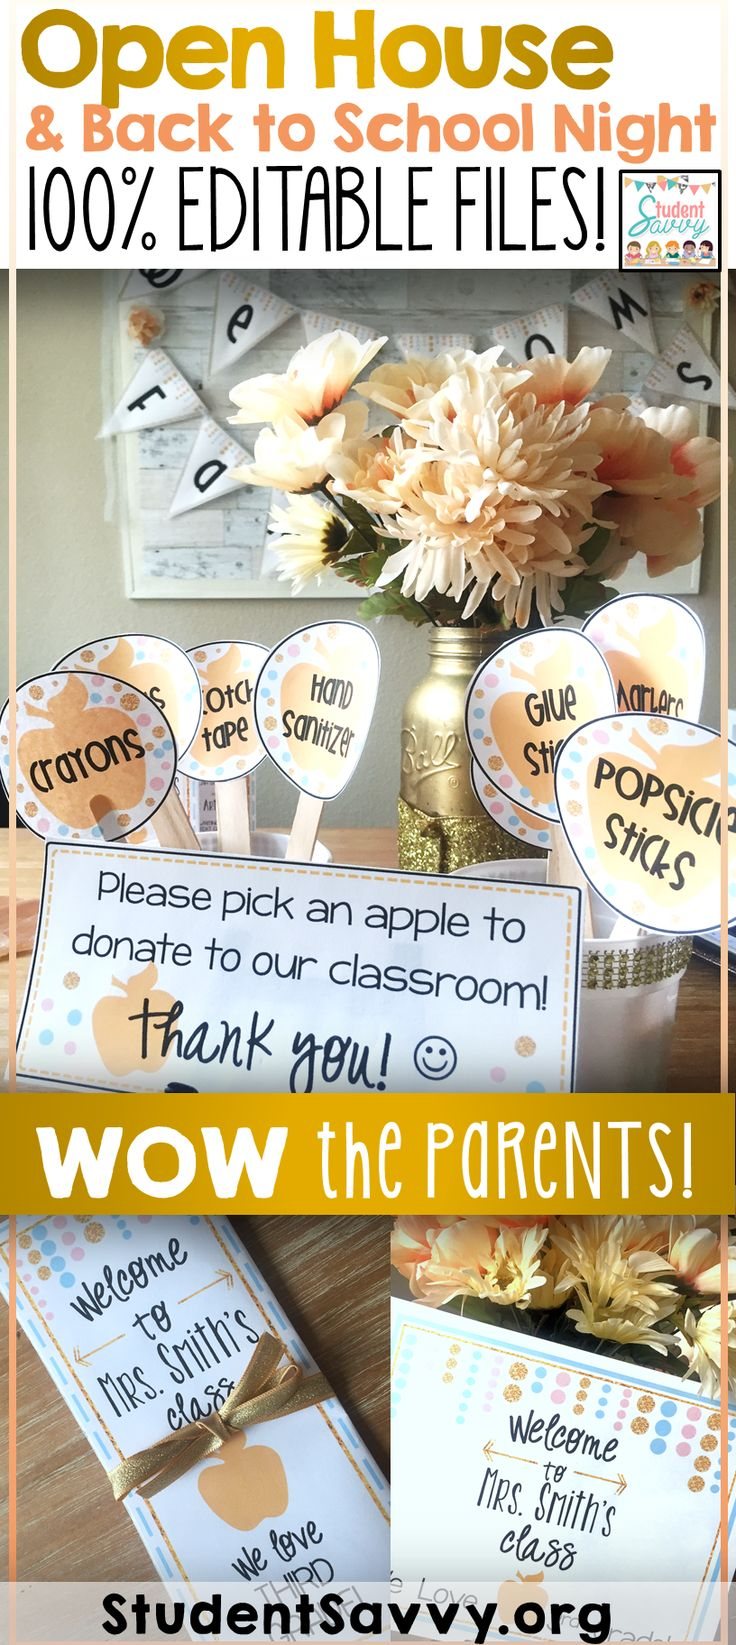 WOW your parents and have the perfect Open House - Meet the Teacher - or Back to School Night! This resource contains forms, decorations, and essentials to have a successful Open House or Meet the Teacher Night!